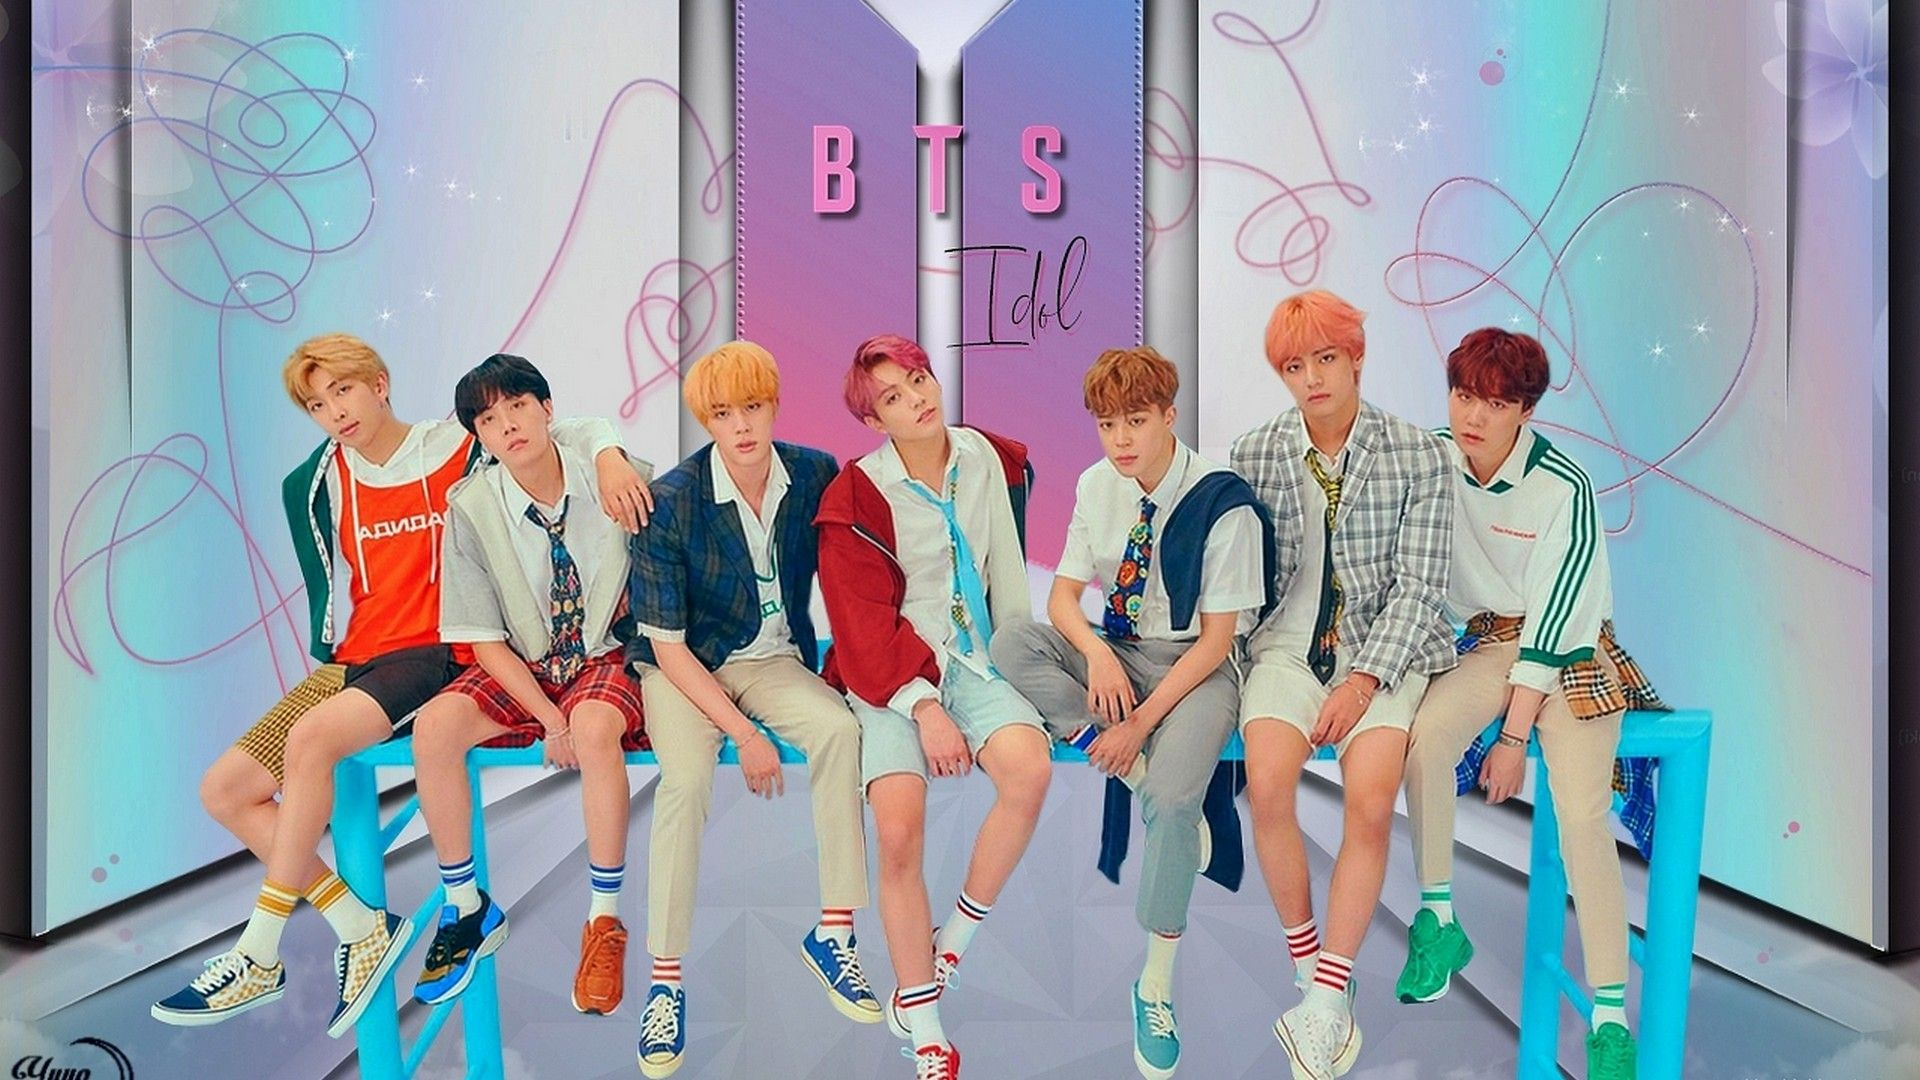 Wallpaper Hd Bts 2020 Live Wallpaper Hd Bts Kertas Dinding Gambar